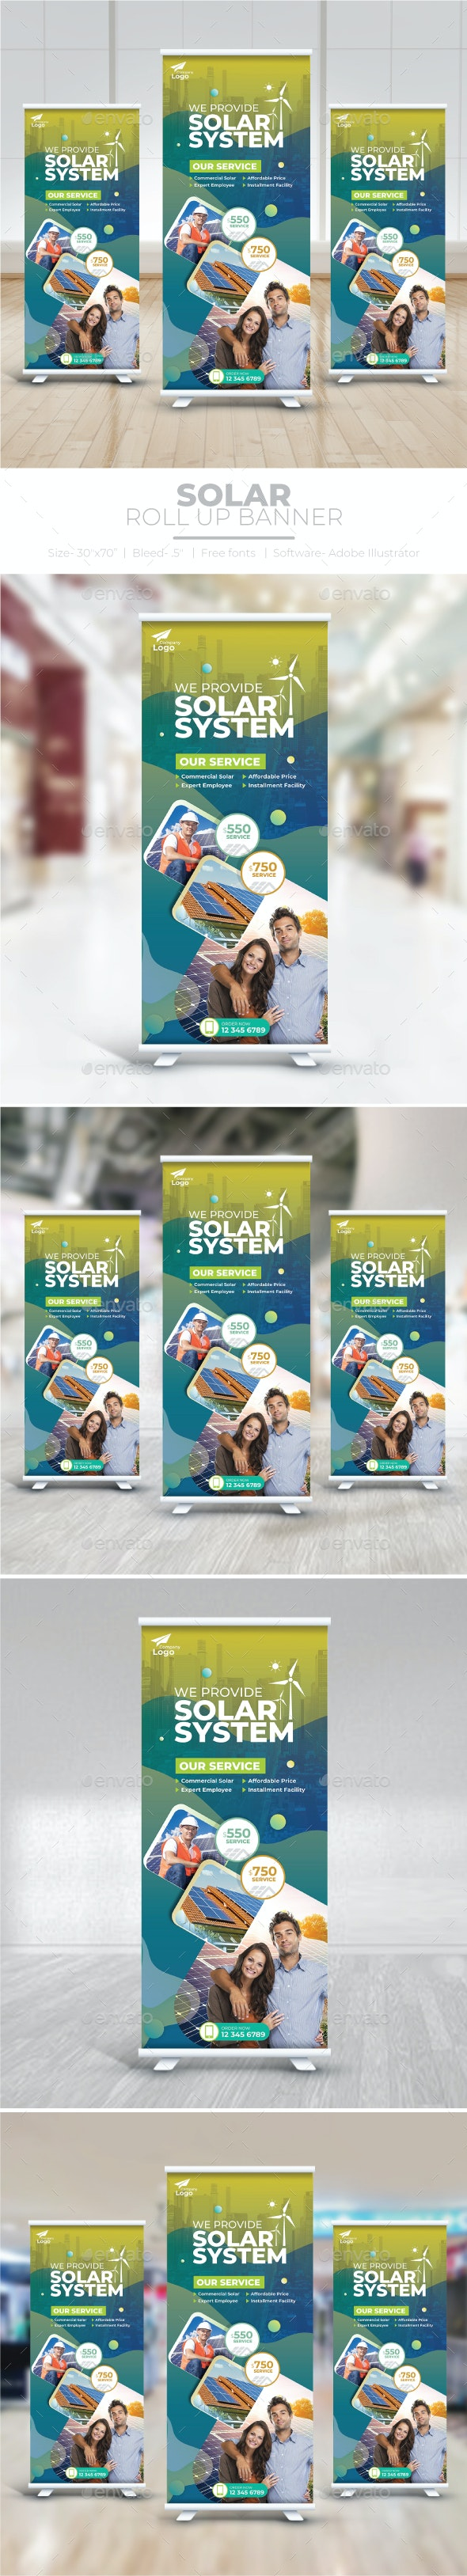 Solar Energy Roll Up Banner - Signage Print Templates